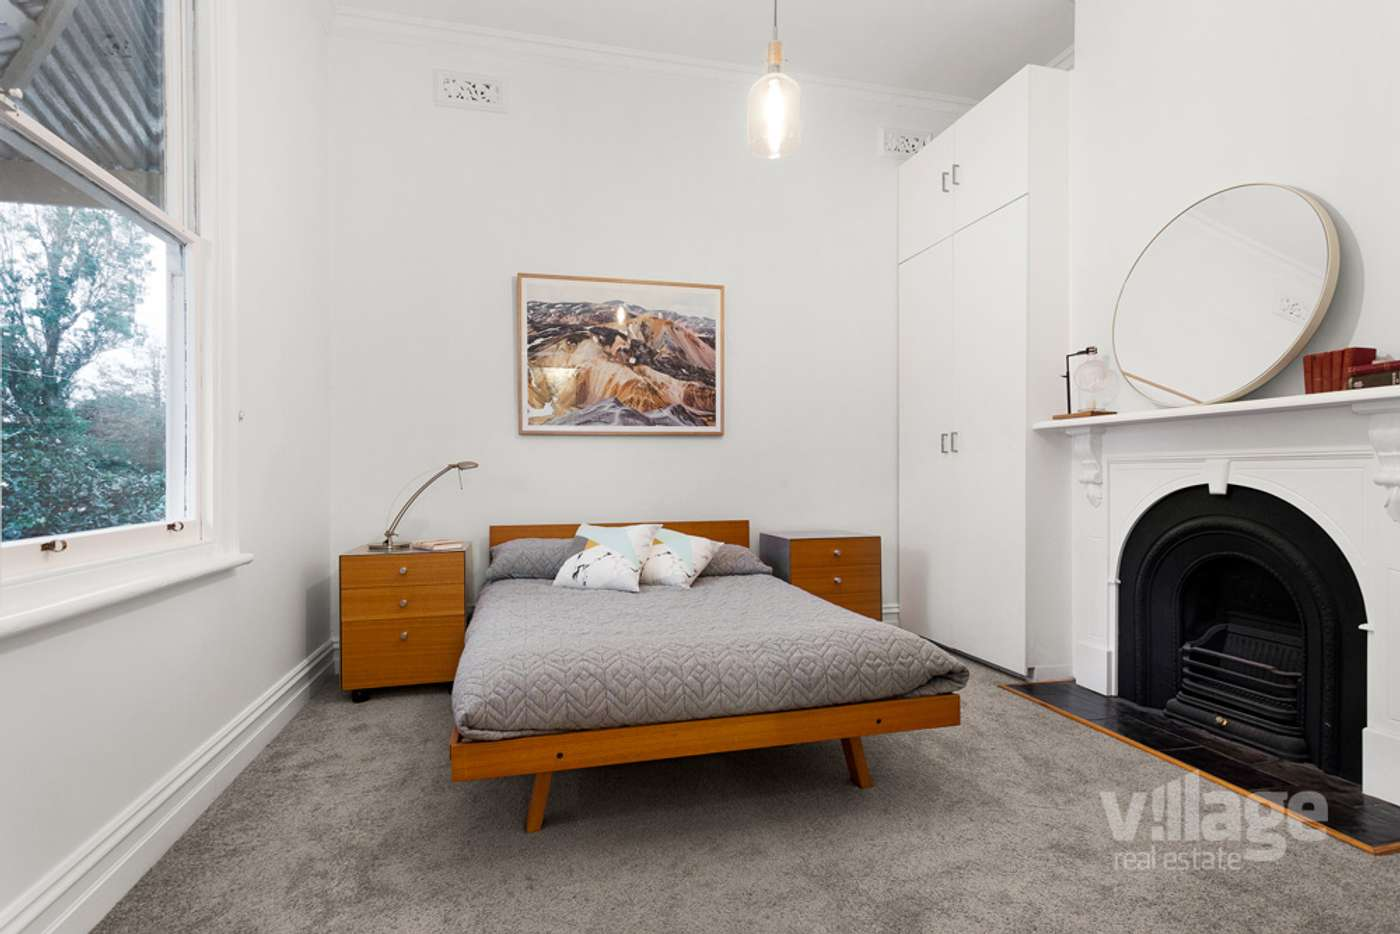 Seventh view of Homely house listing, 30 Simpson Street, Yarraville VIC 3013